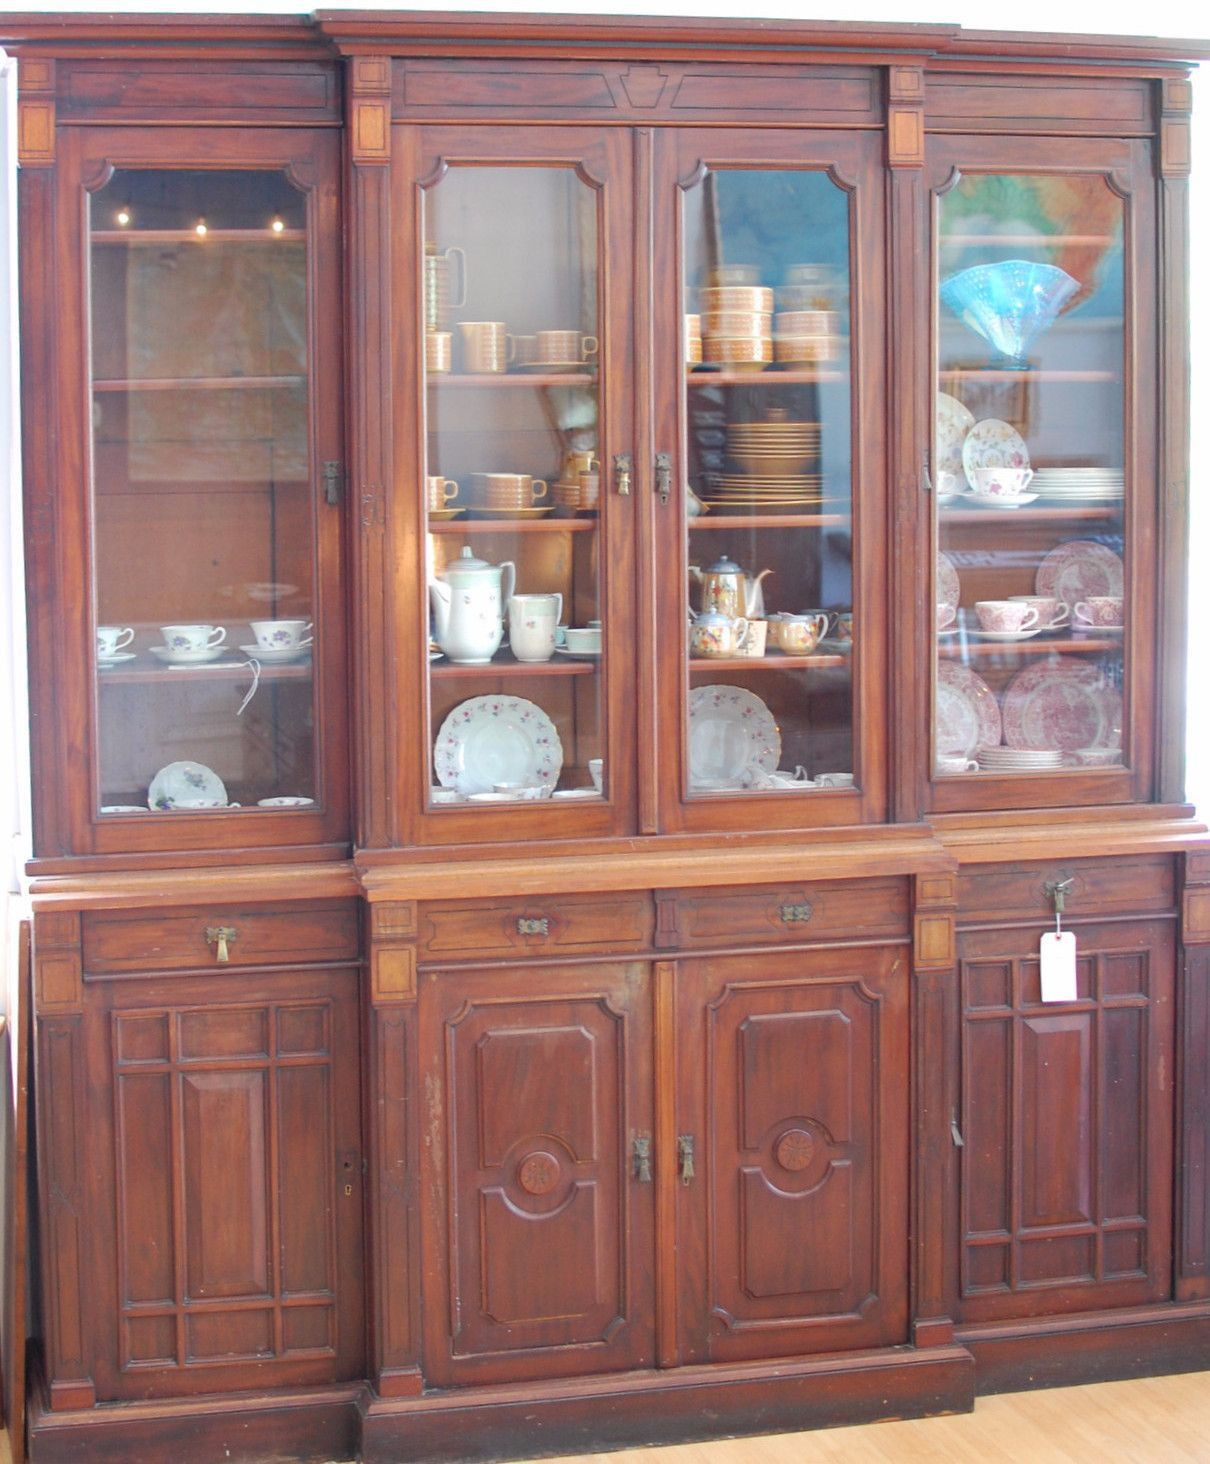 Buy Victorian Breakfront Bookcase At Bloodline Merchants For Only 2 225 00 In